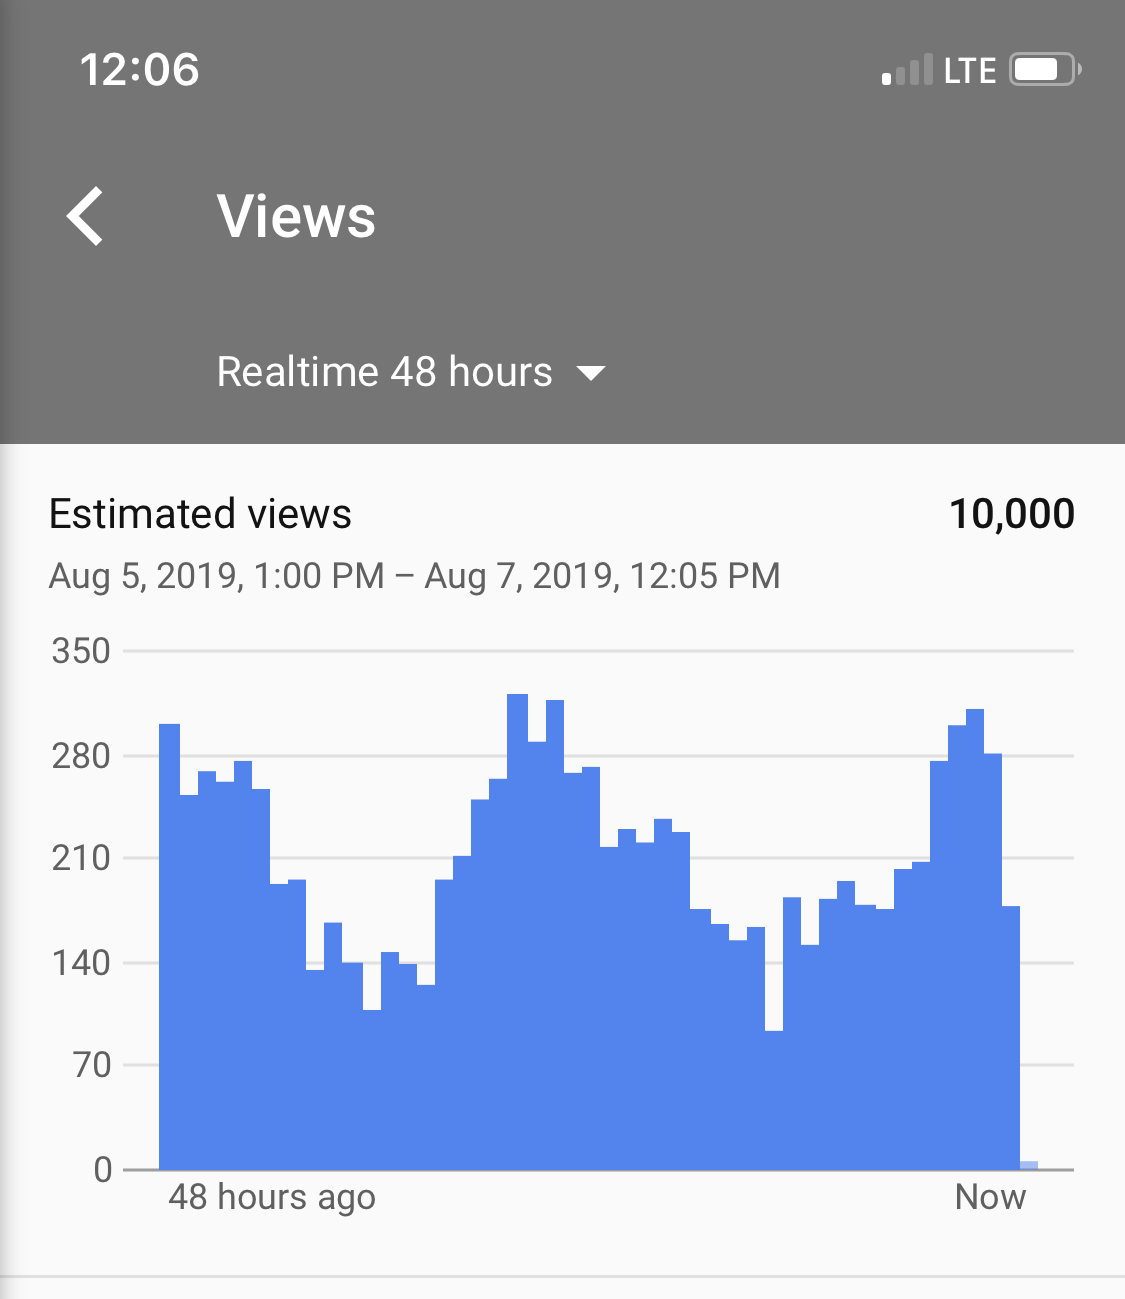 Experiencing different data sets for estimated views in